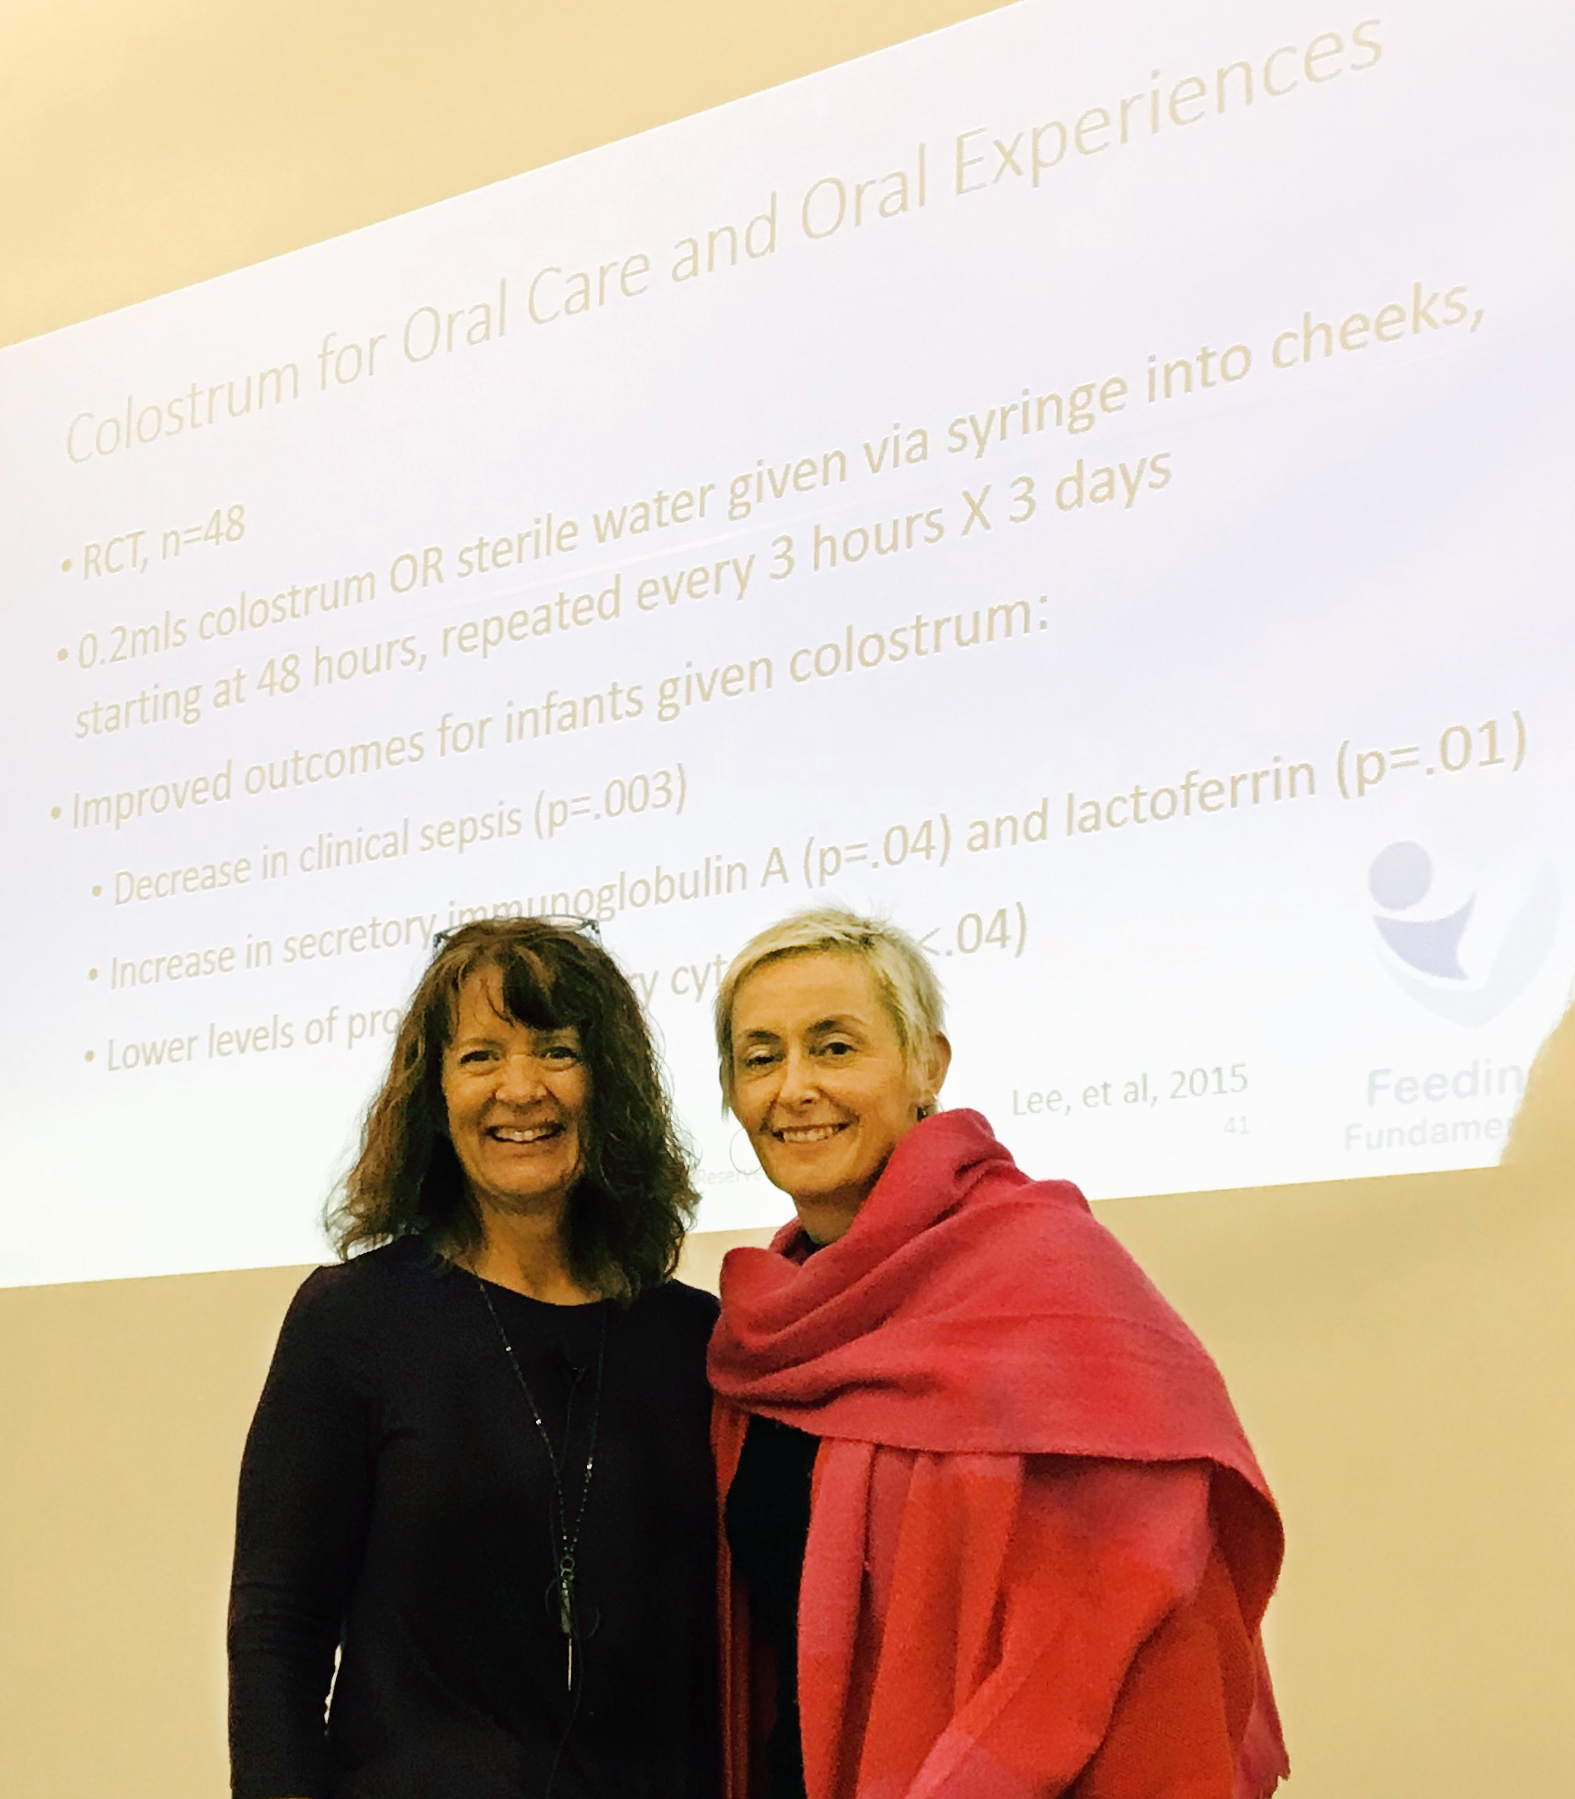 Claire Attended the SOFFI course